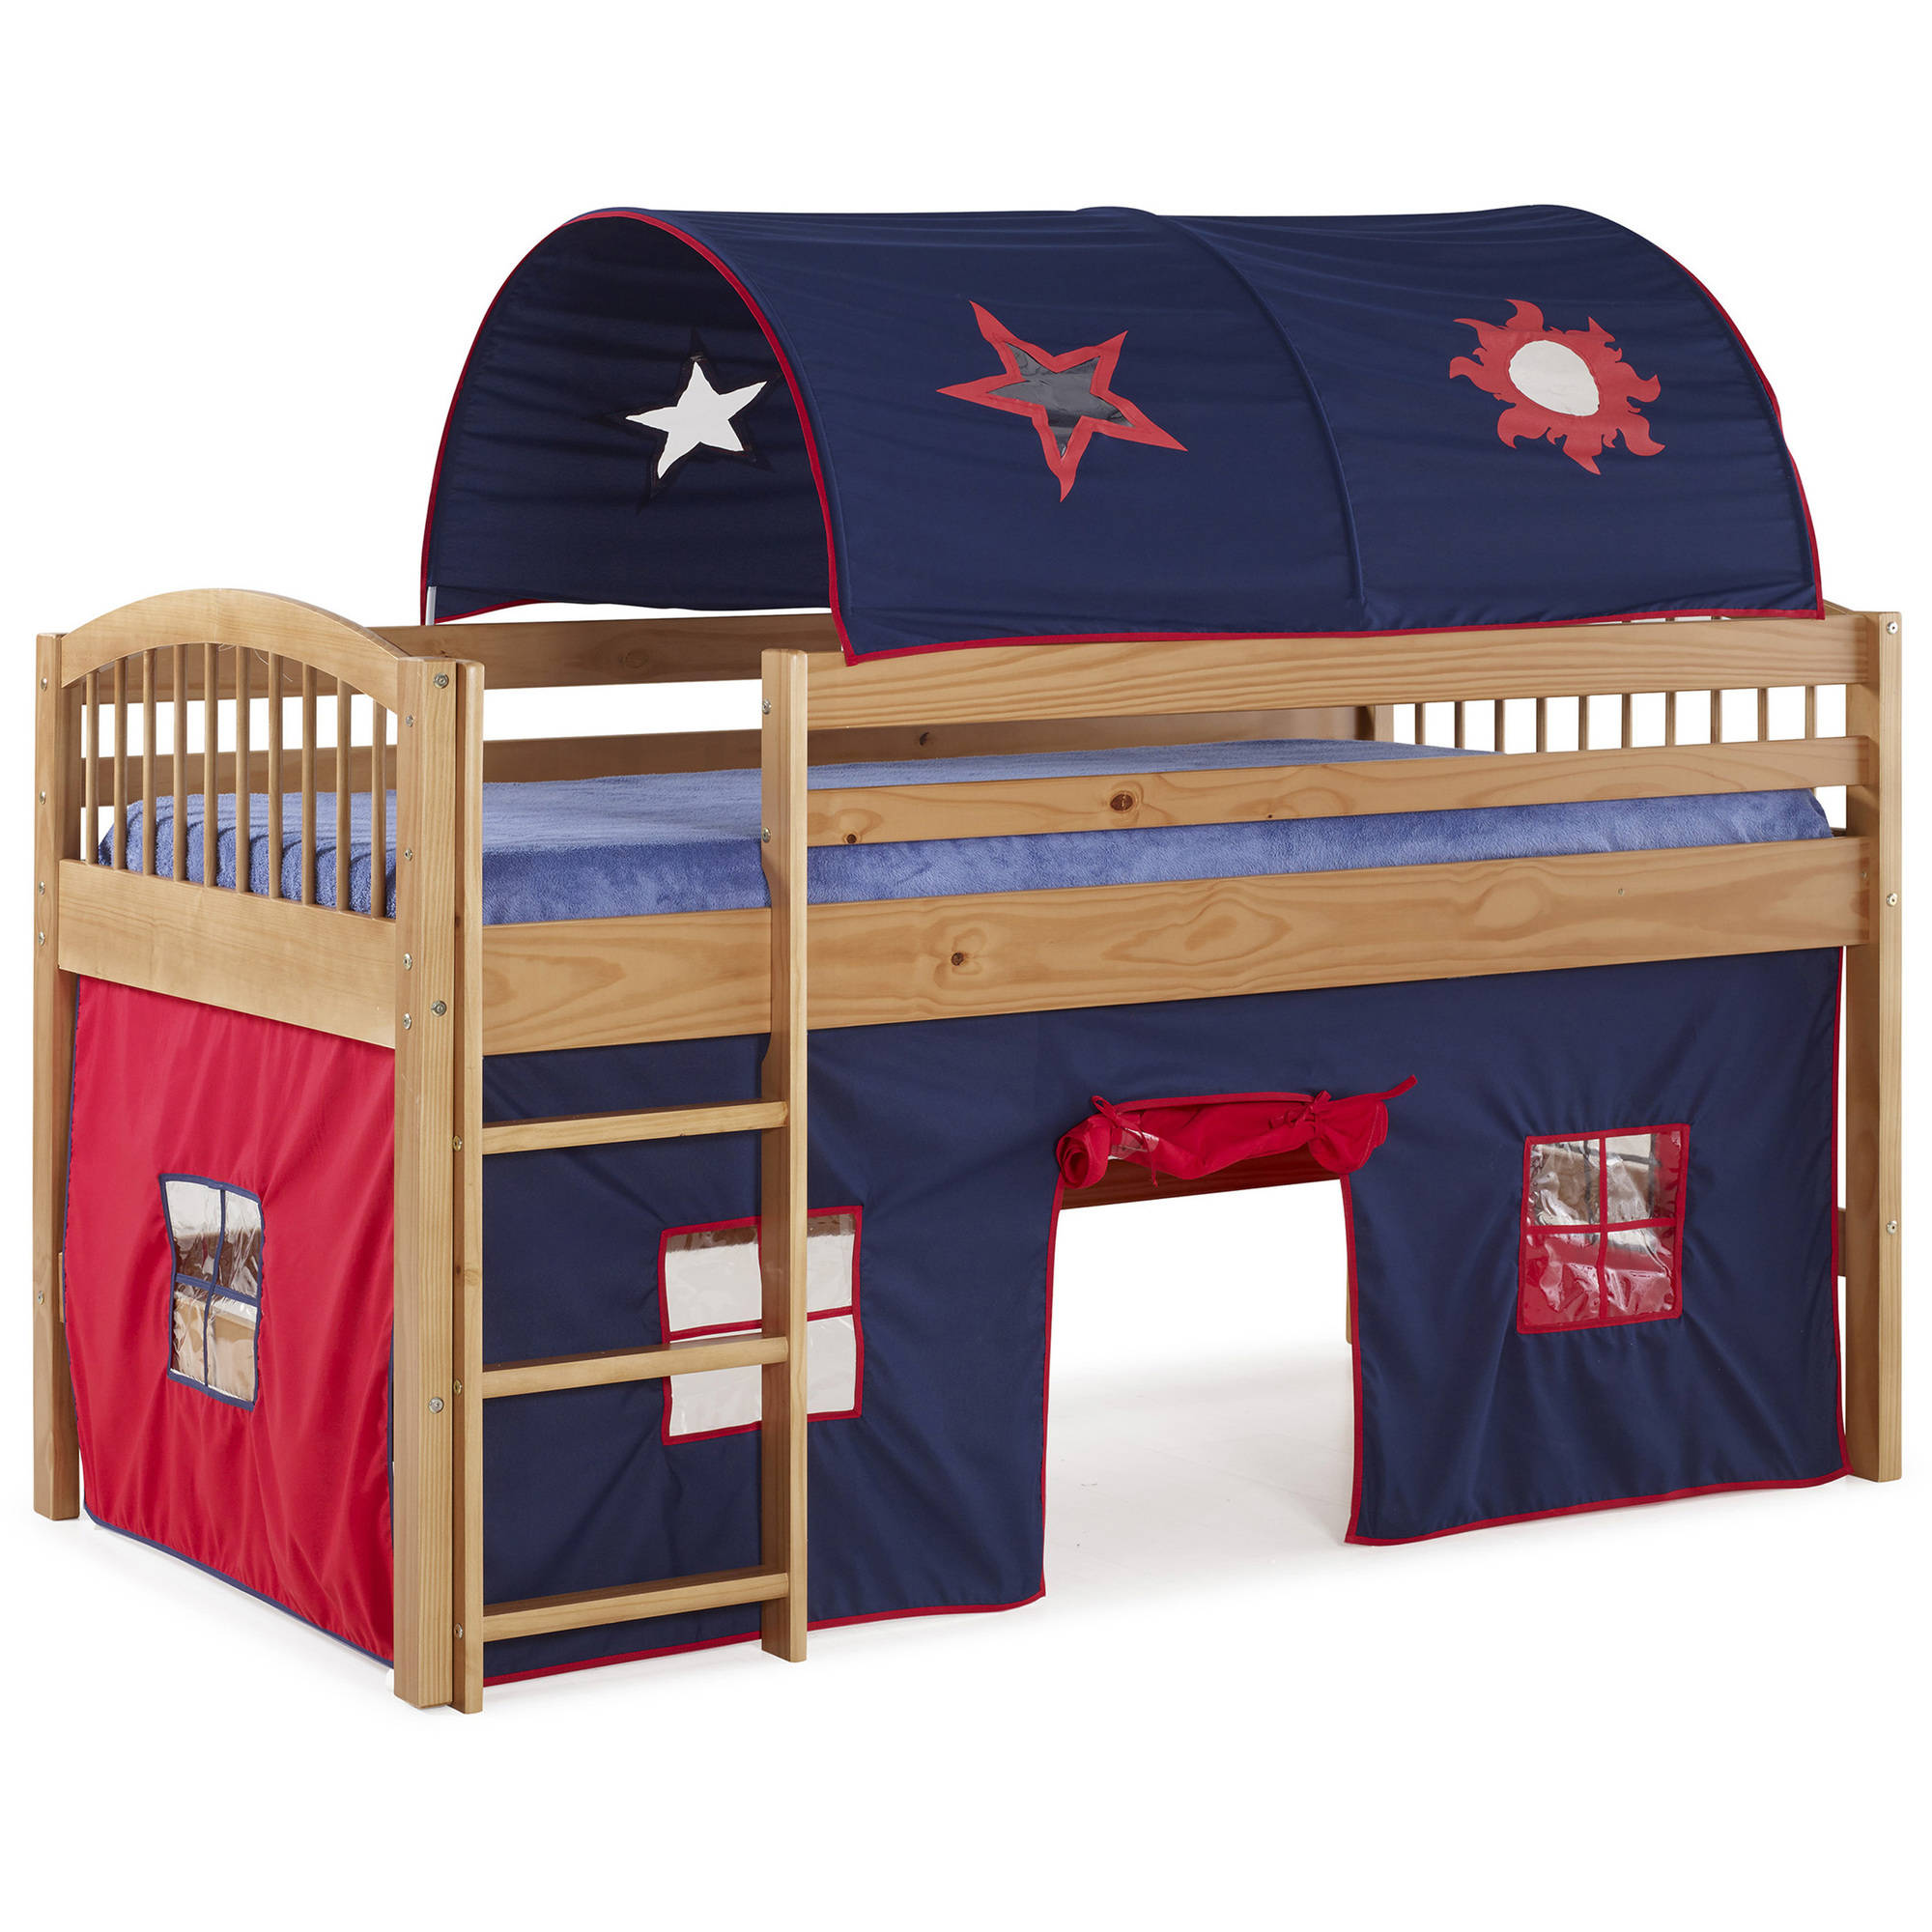 Addison Cinnamon Finish Junior Loft Bed, Blue Tent and Playhouse with Red Trim by Alaterre